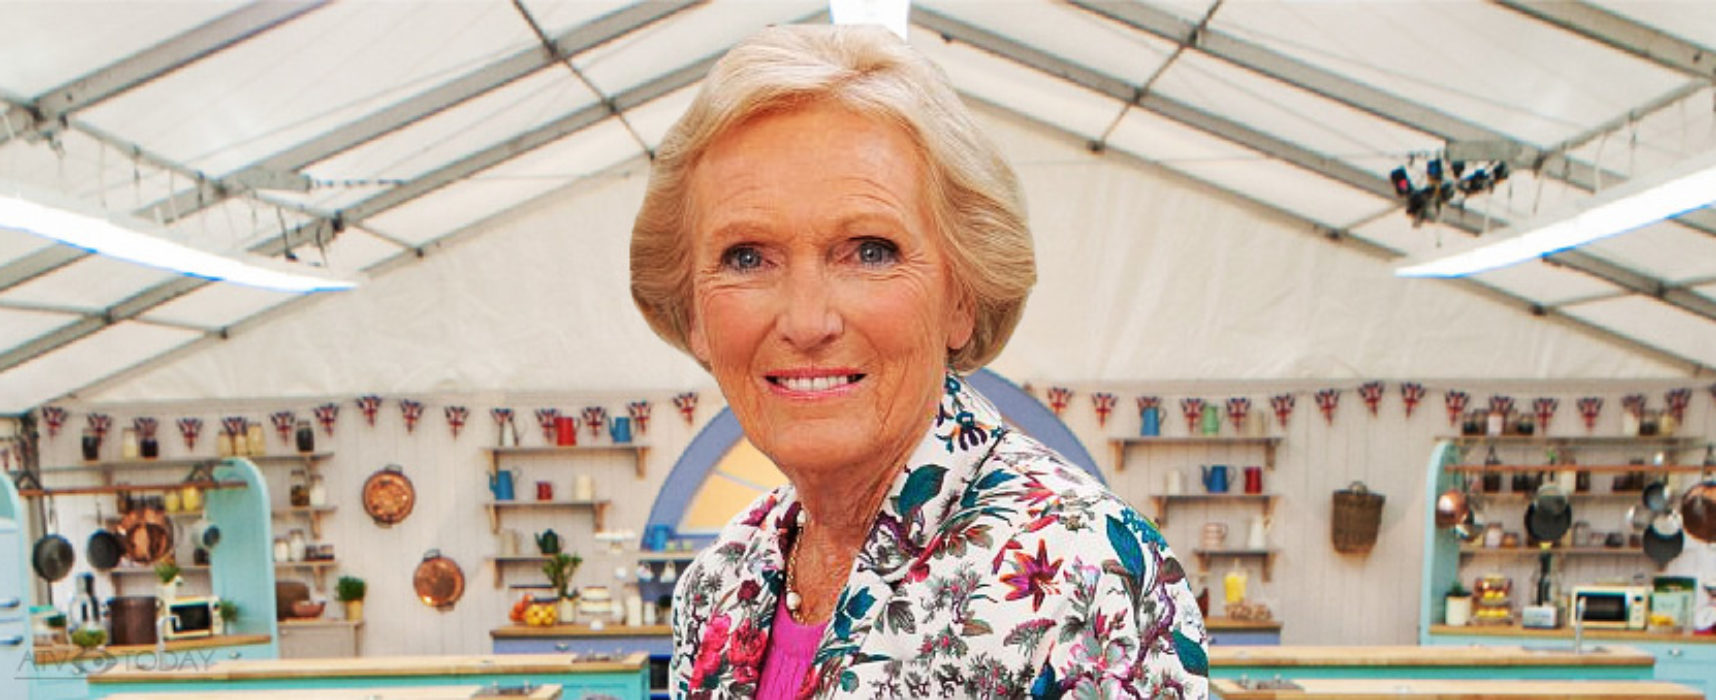 No Berry on Channel 4's Bake Off